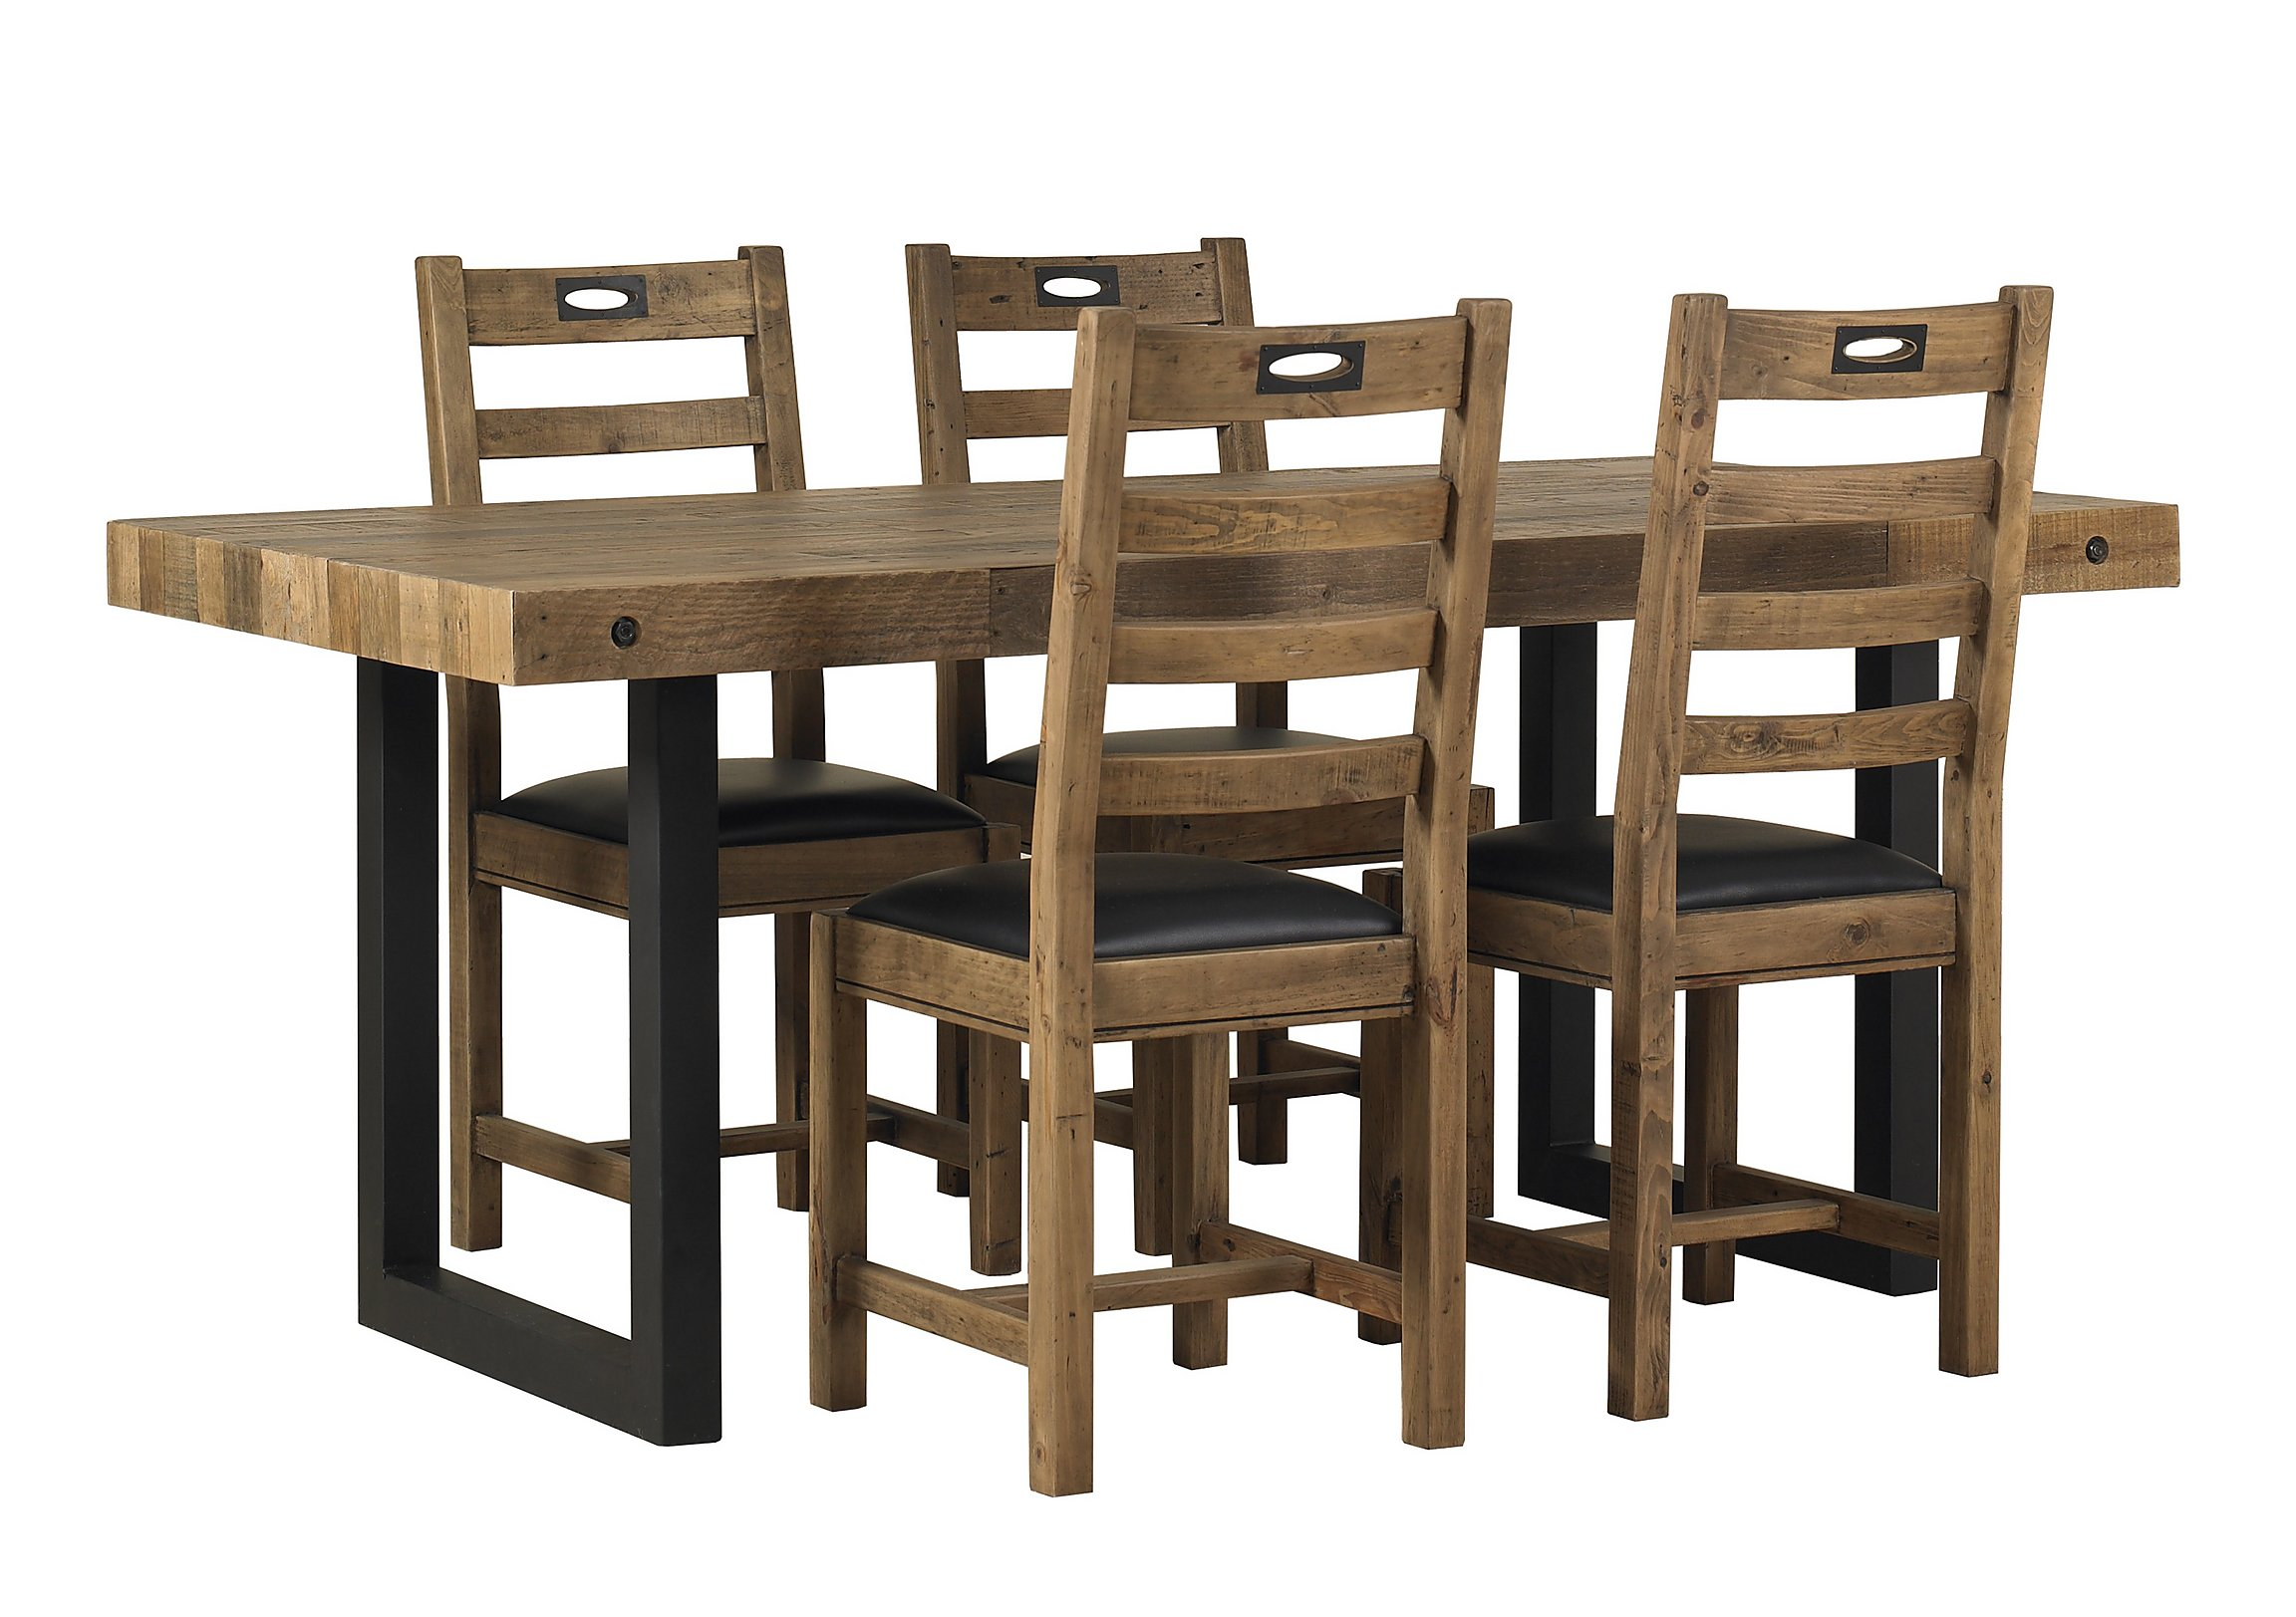 Dining Table Chairs Hoxton Dining Table With Chairs Furniture